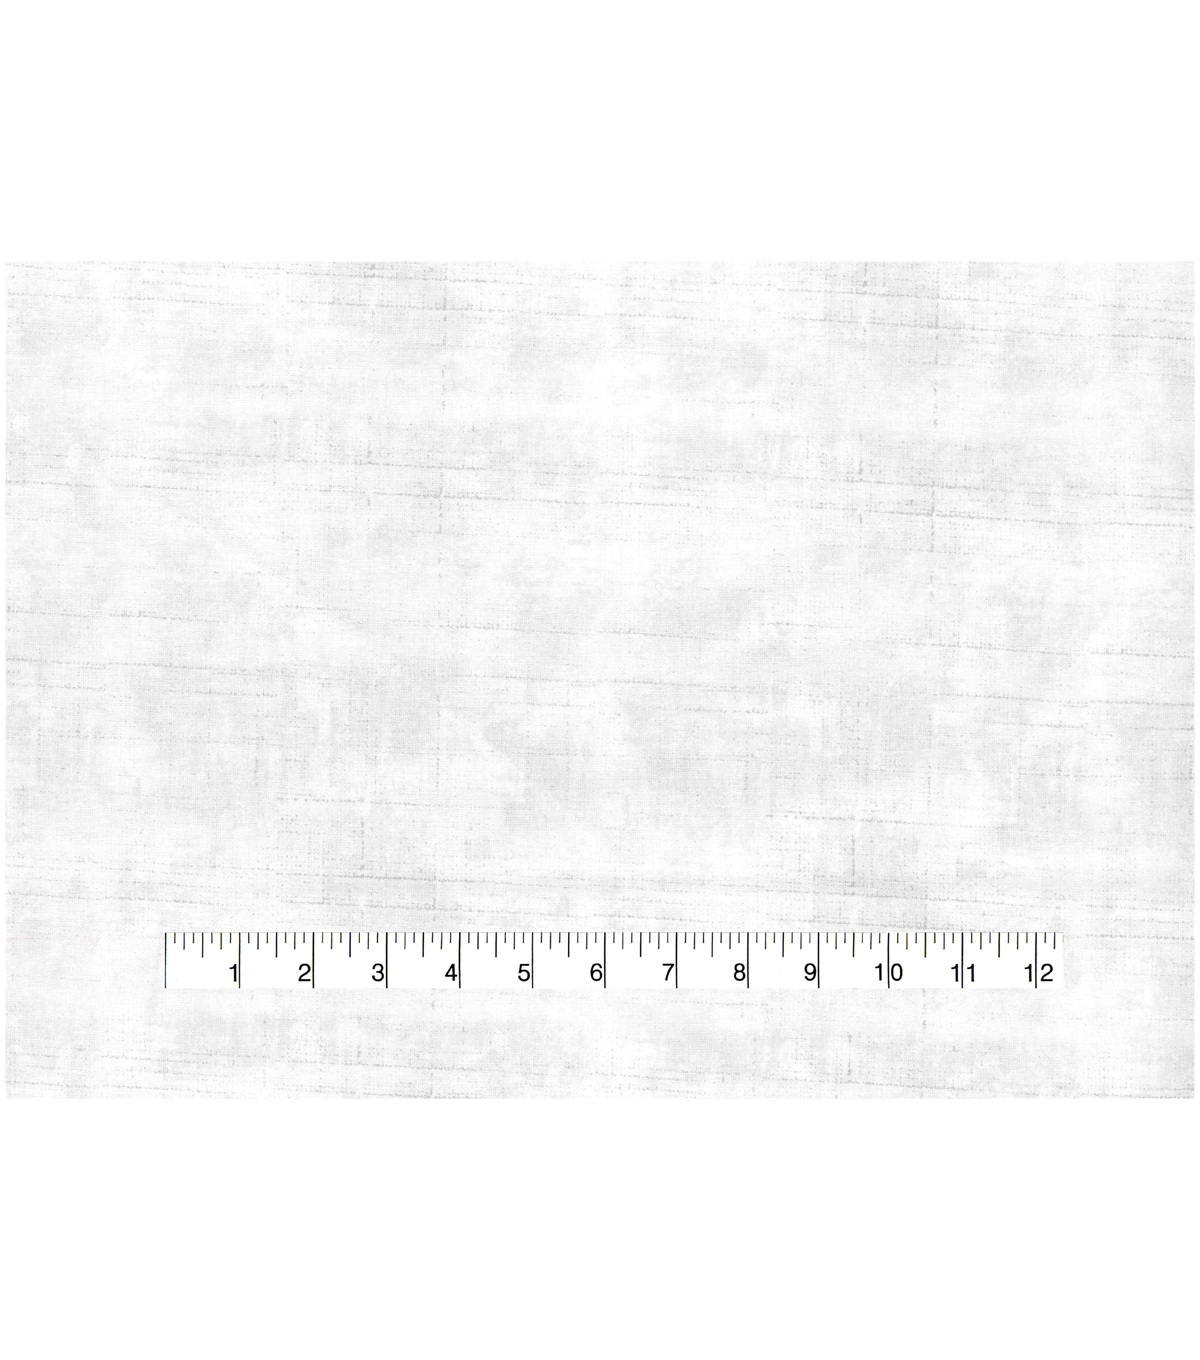 Keepsake Calico Cotton Fabric 43\u0027\u0027-White Tonal Blender